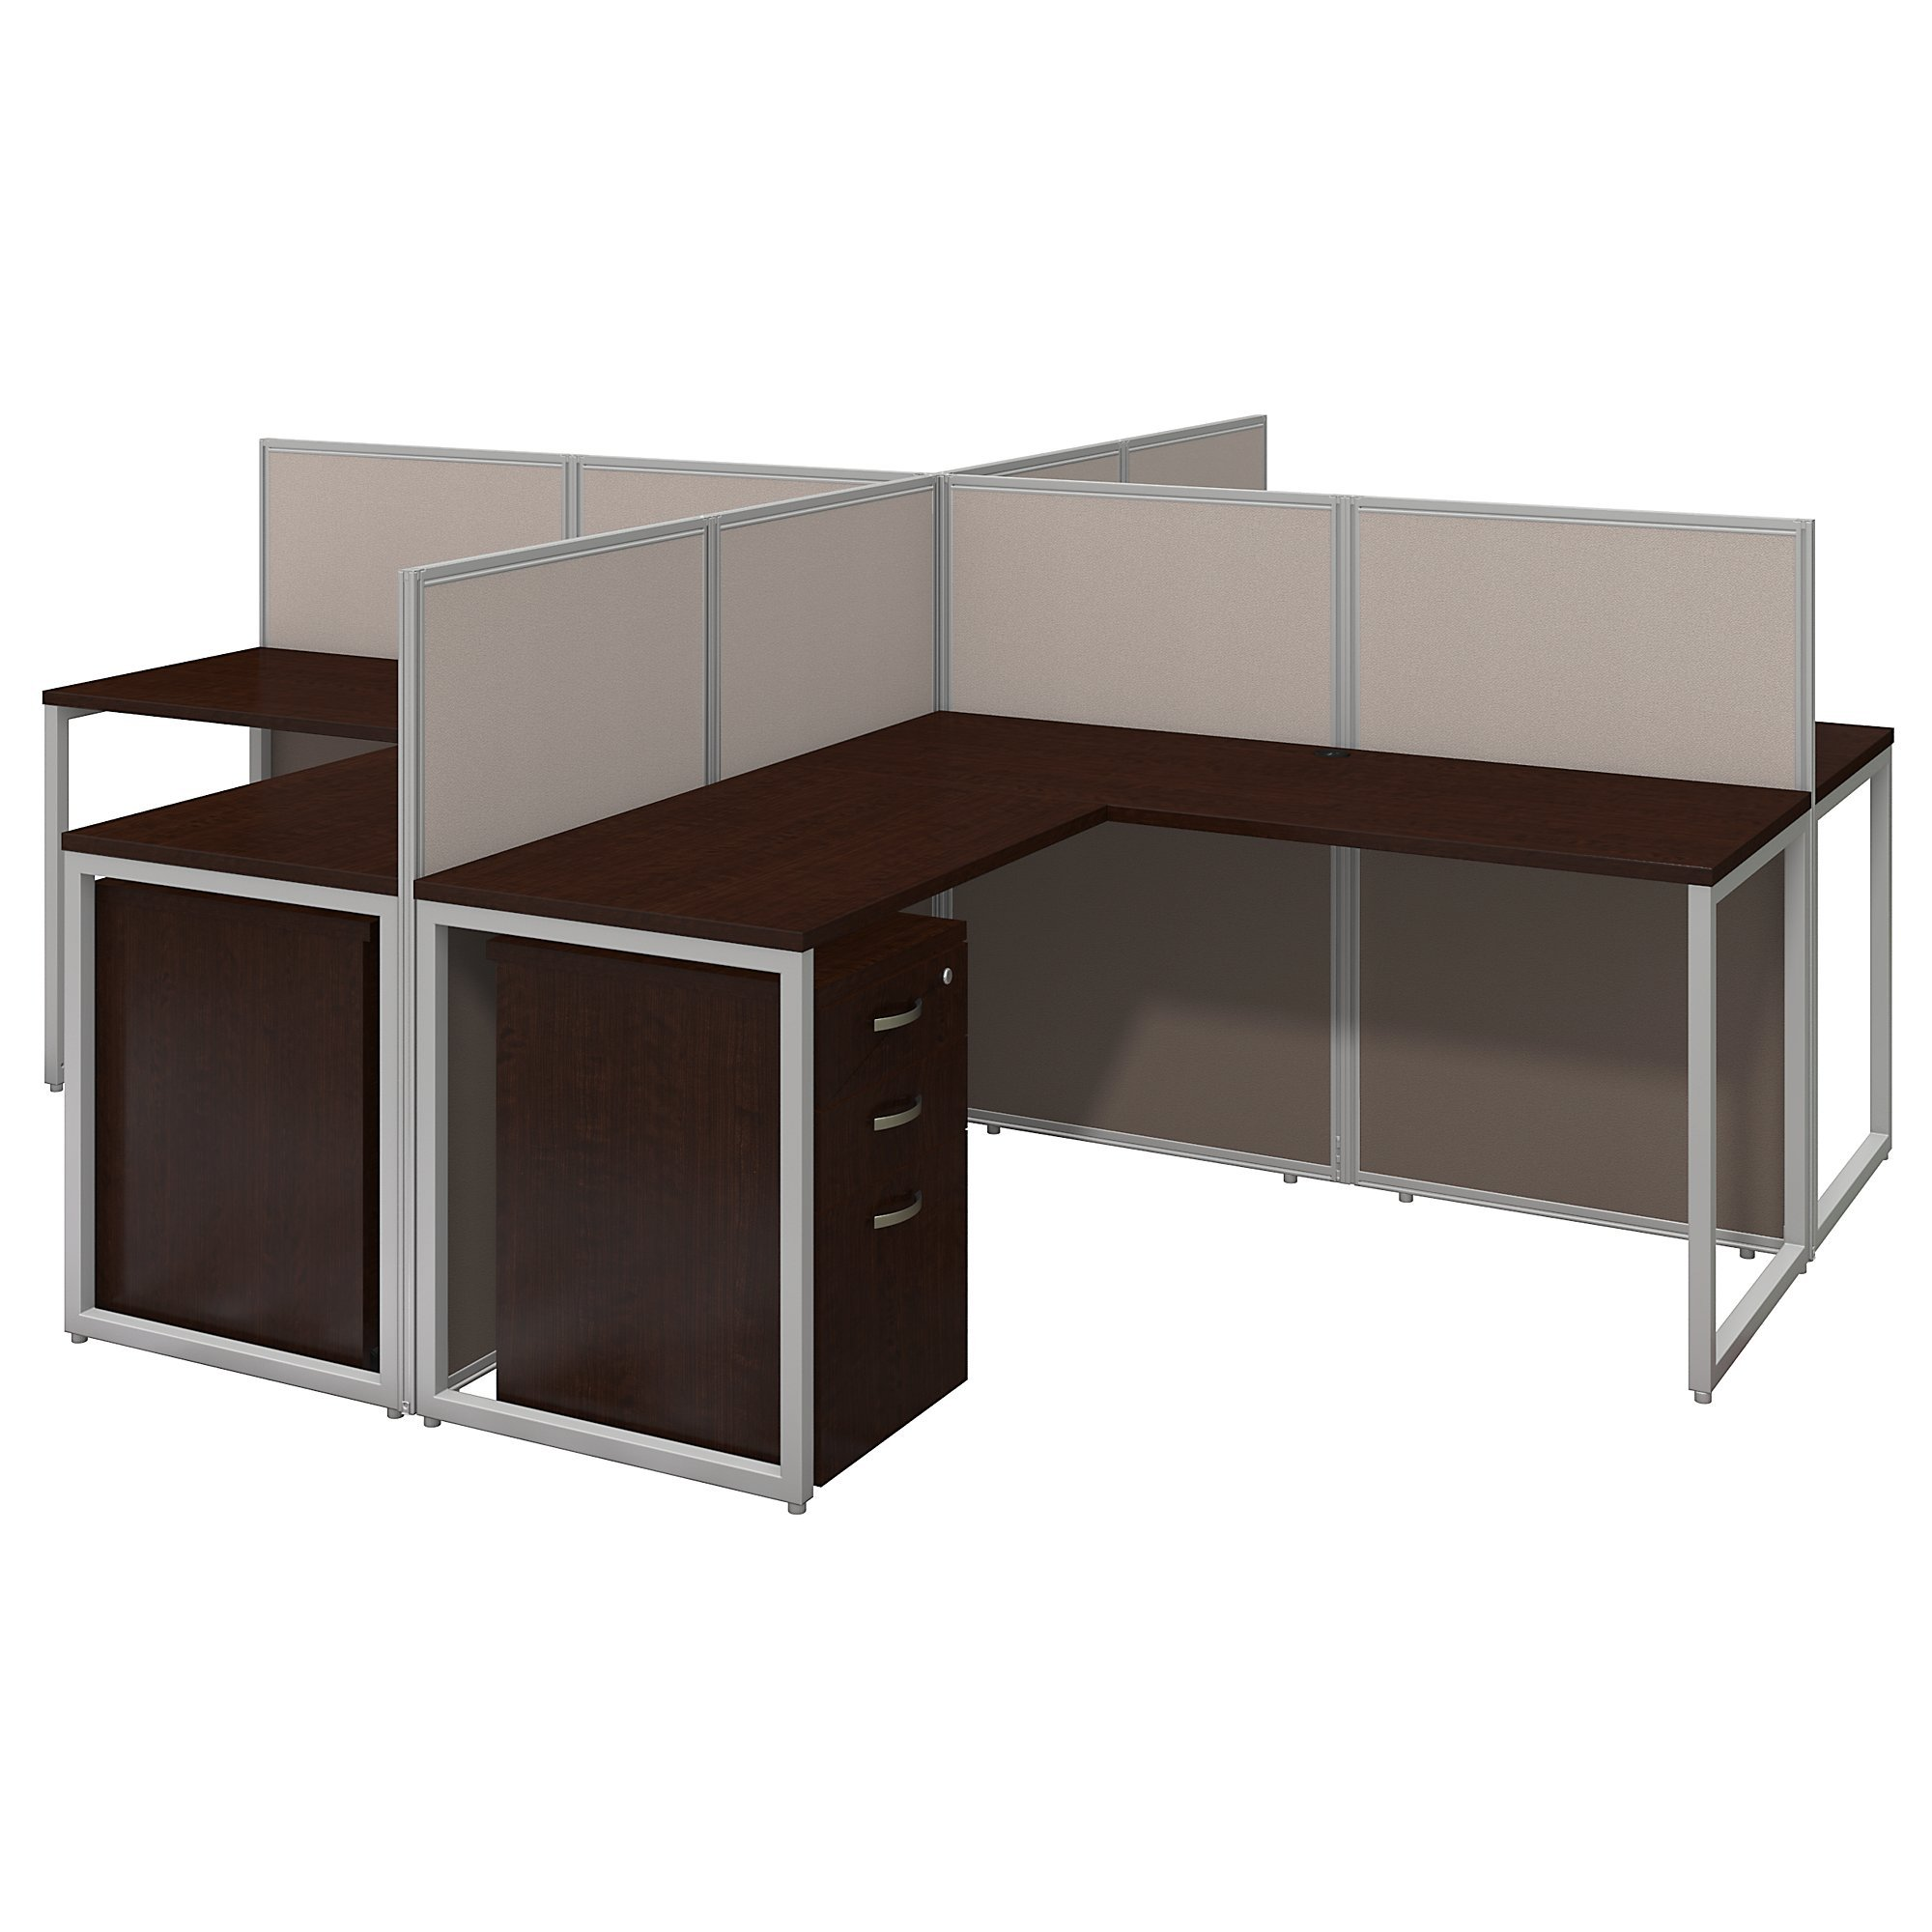 Attirant Get Quotations · Easy Office 60W 4 Person L Shaped Desk Open Office With  Mobile File Cabinets In Mocha